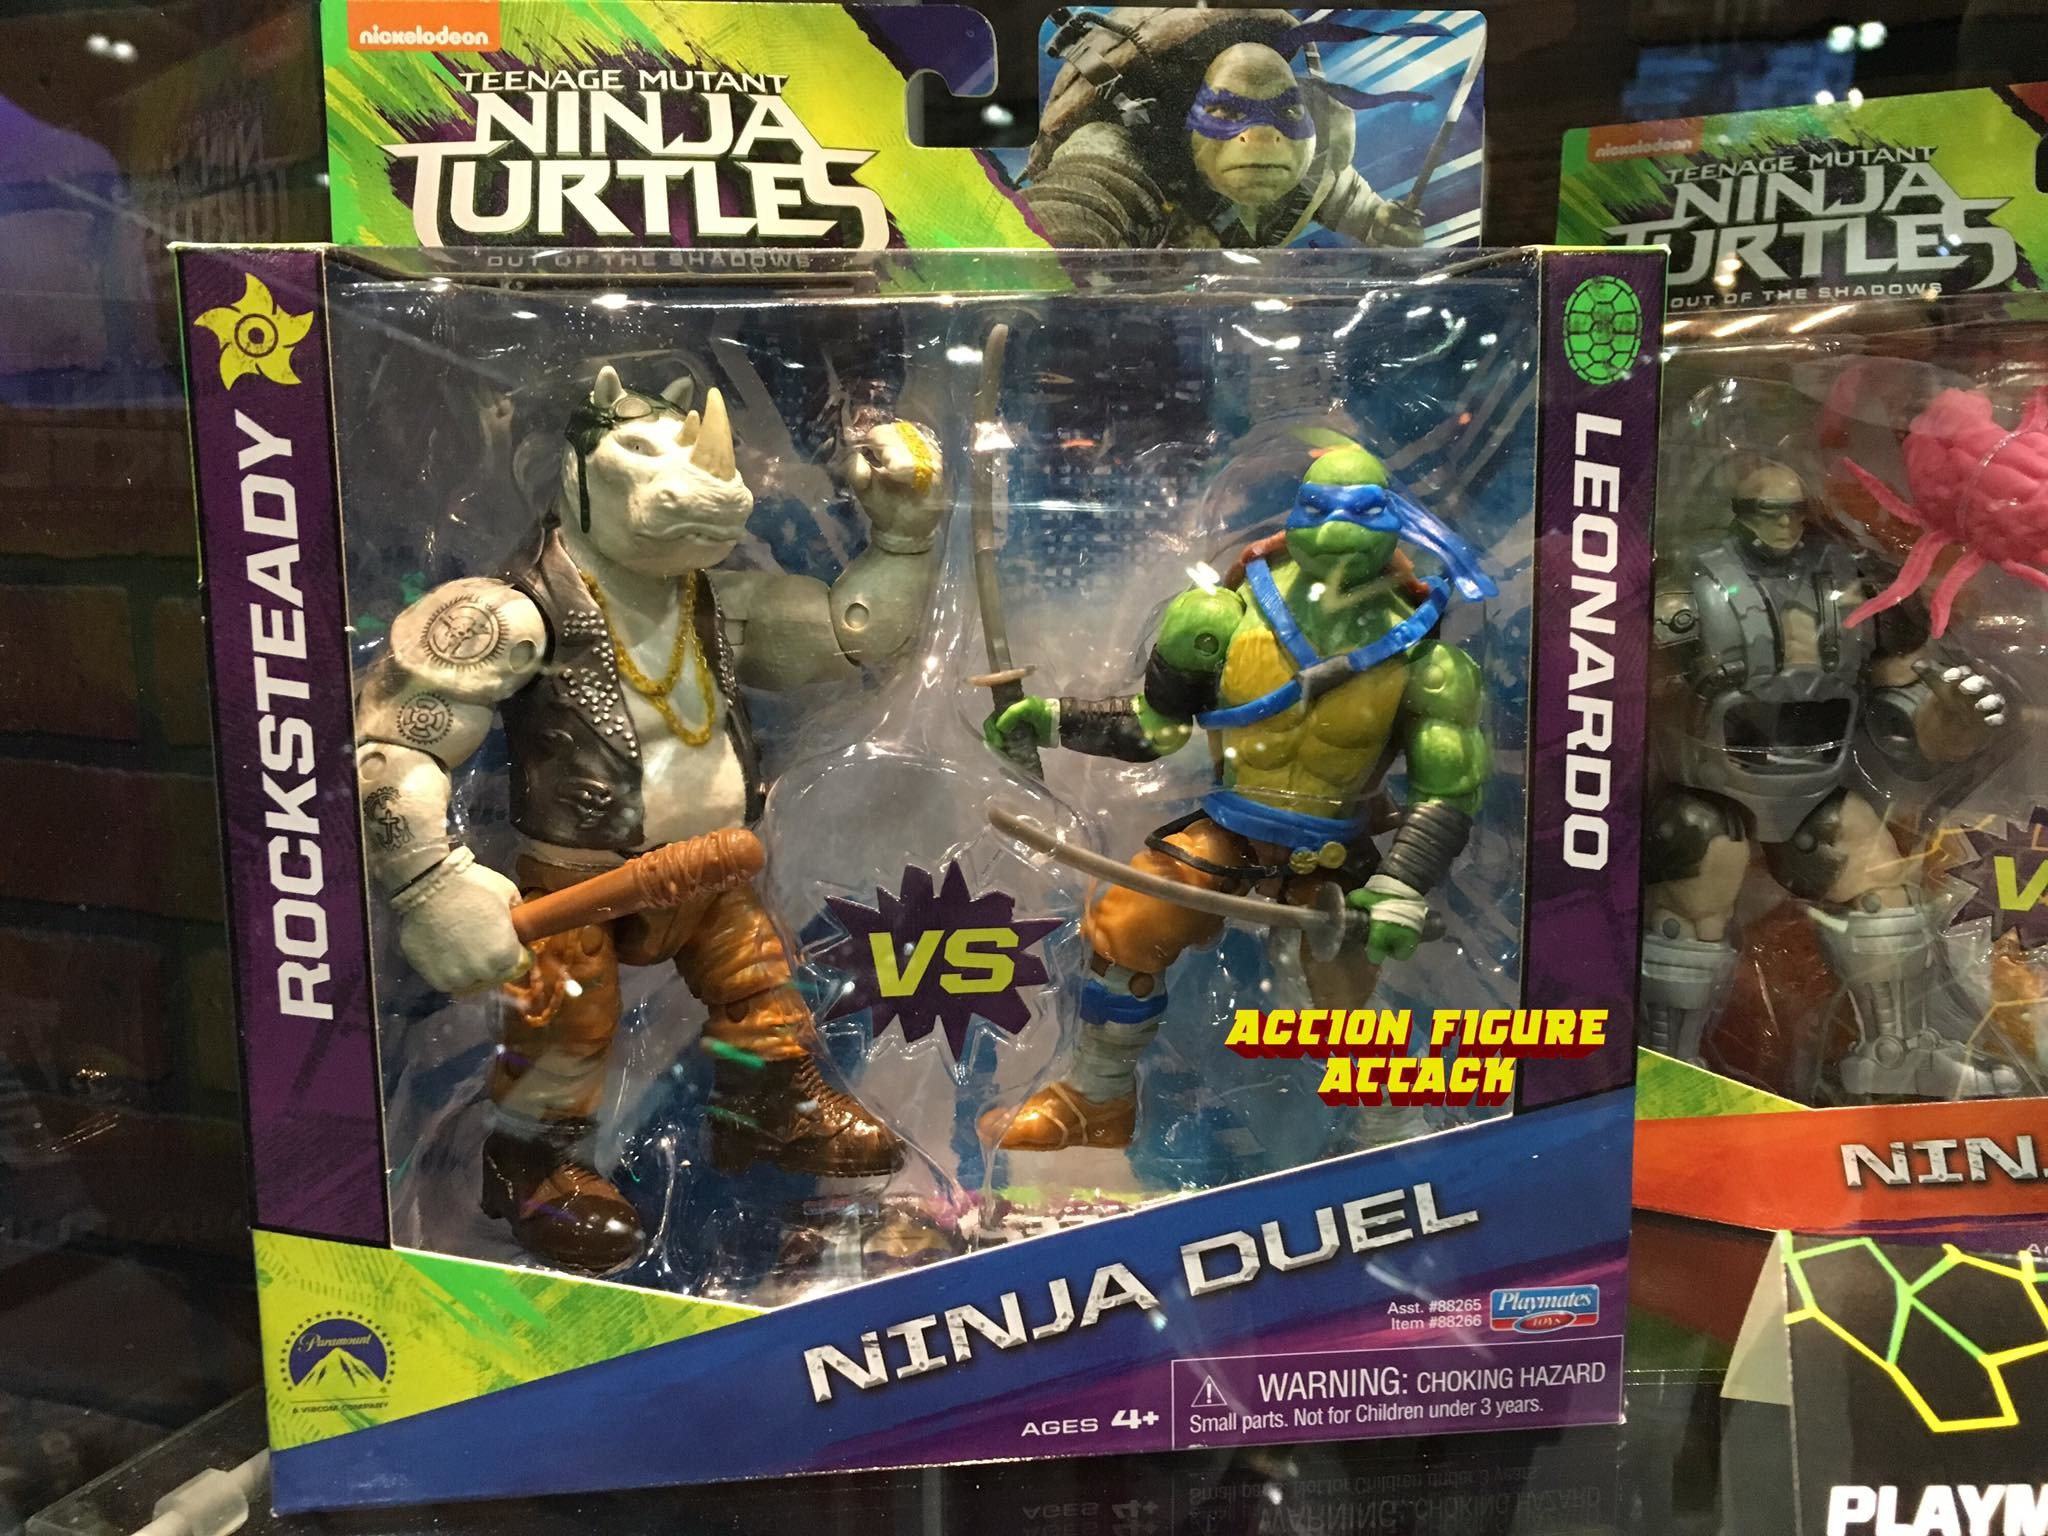 2048x1536 Teenage Mutant Ninja Turtles: Out of the Shadows Figures at WonderCon -  Additional Images